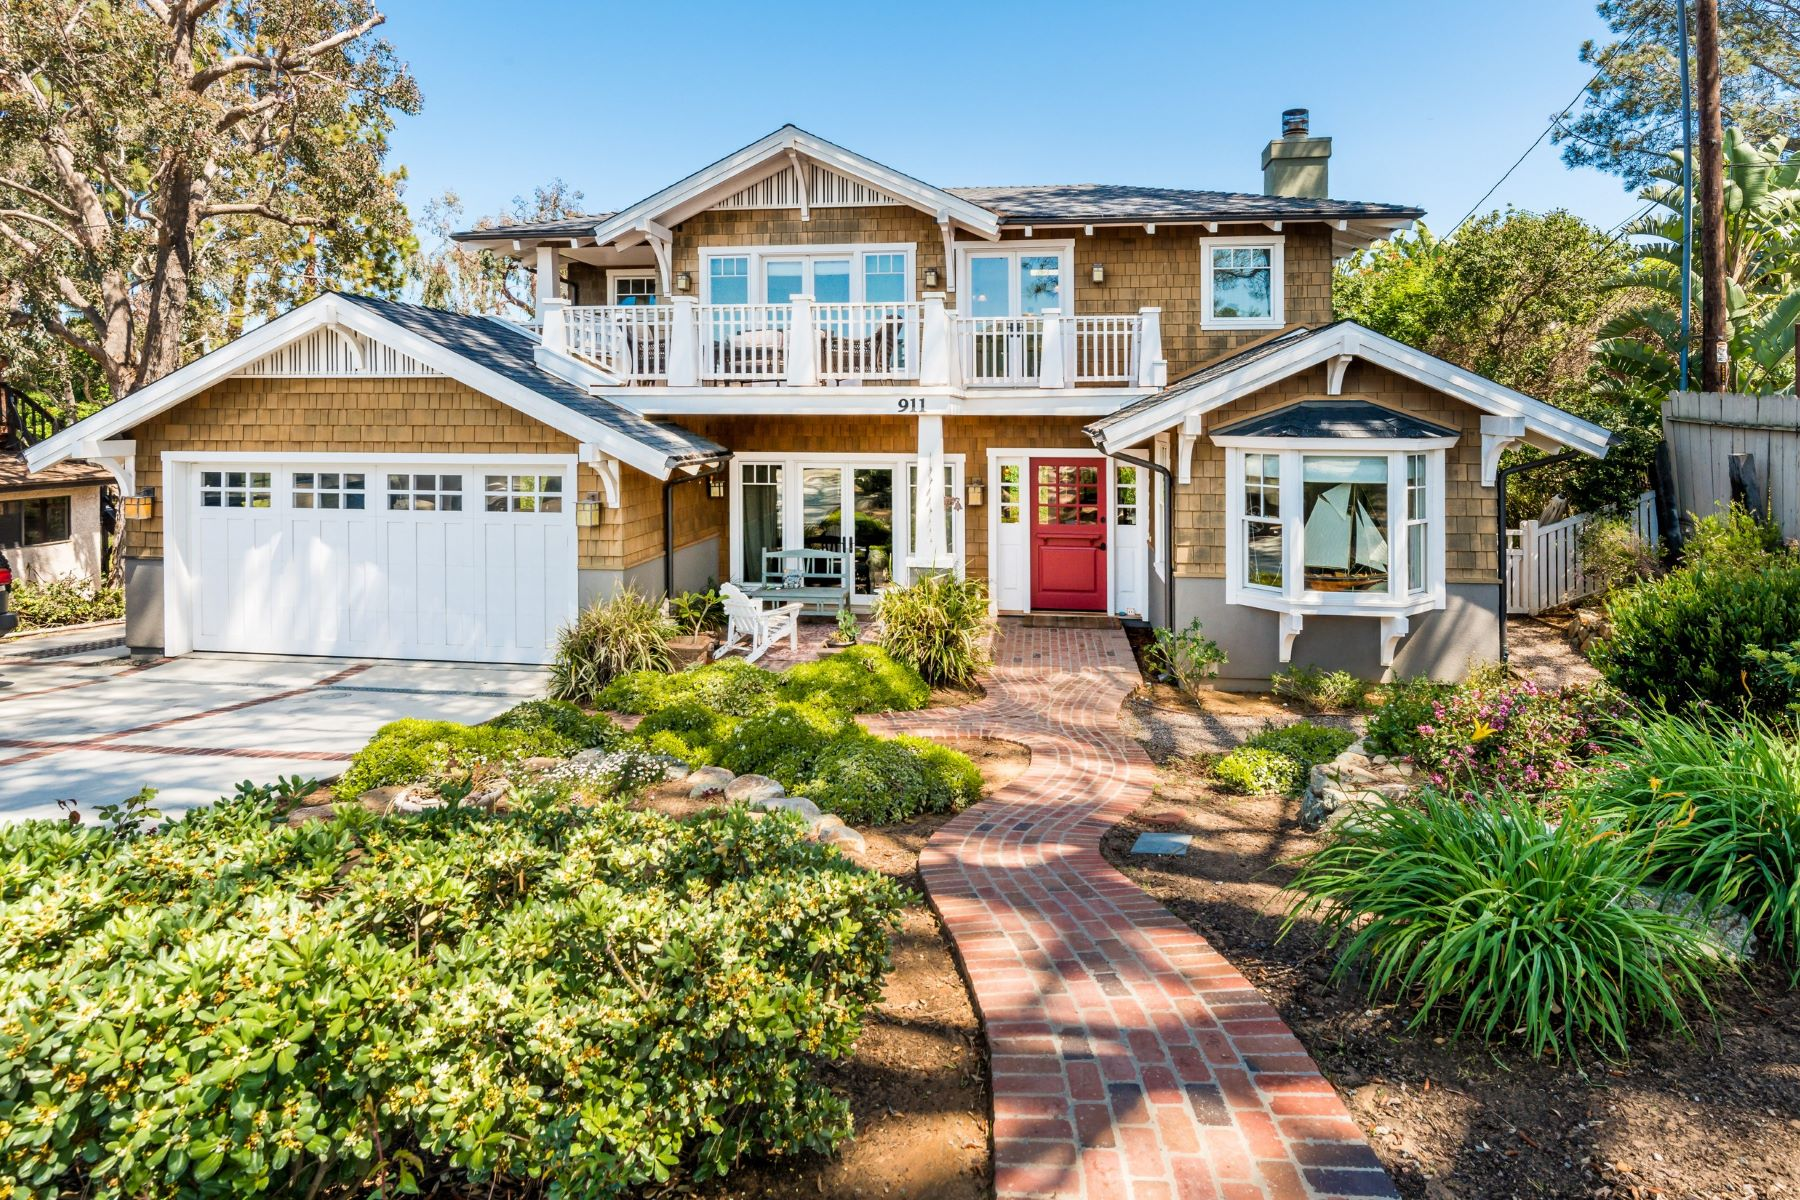 Single Family Home for Sale at 911 Cornish Drive Encinitas, California, 92024 United States